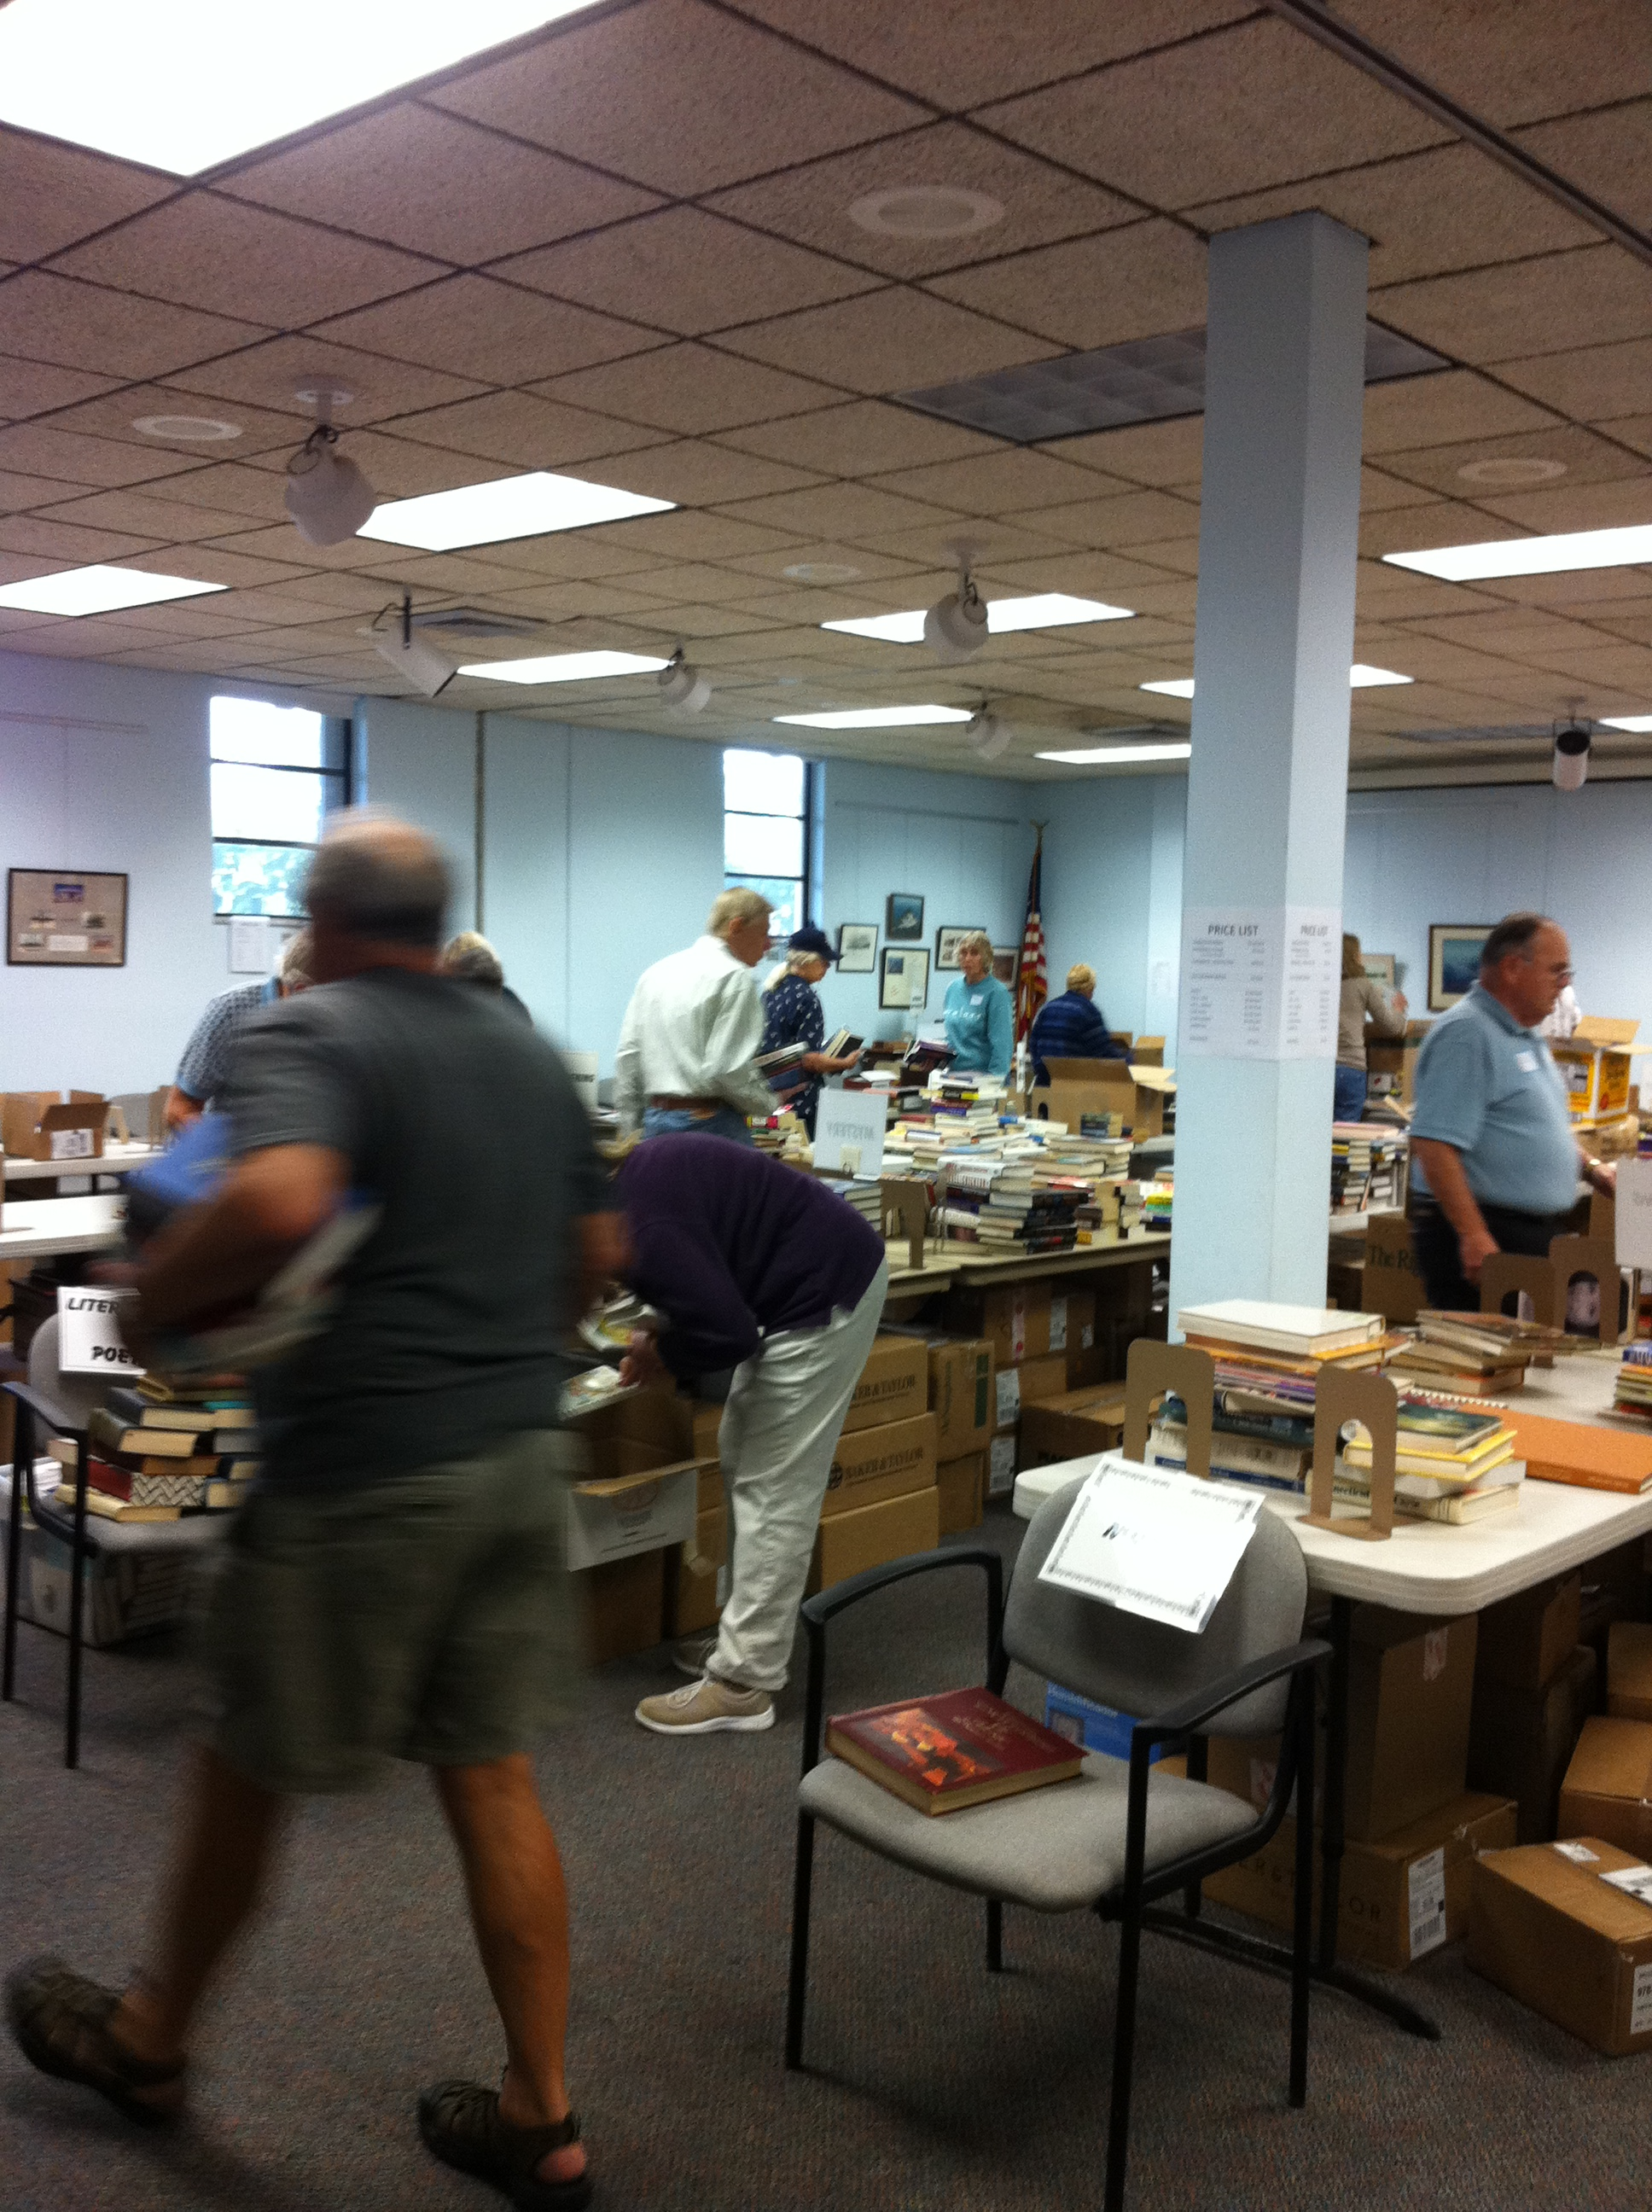 The Friends of the Library organized a book sale